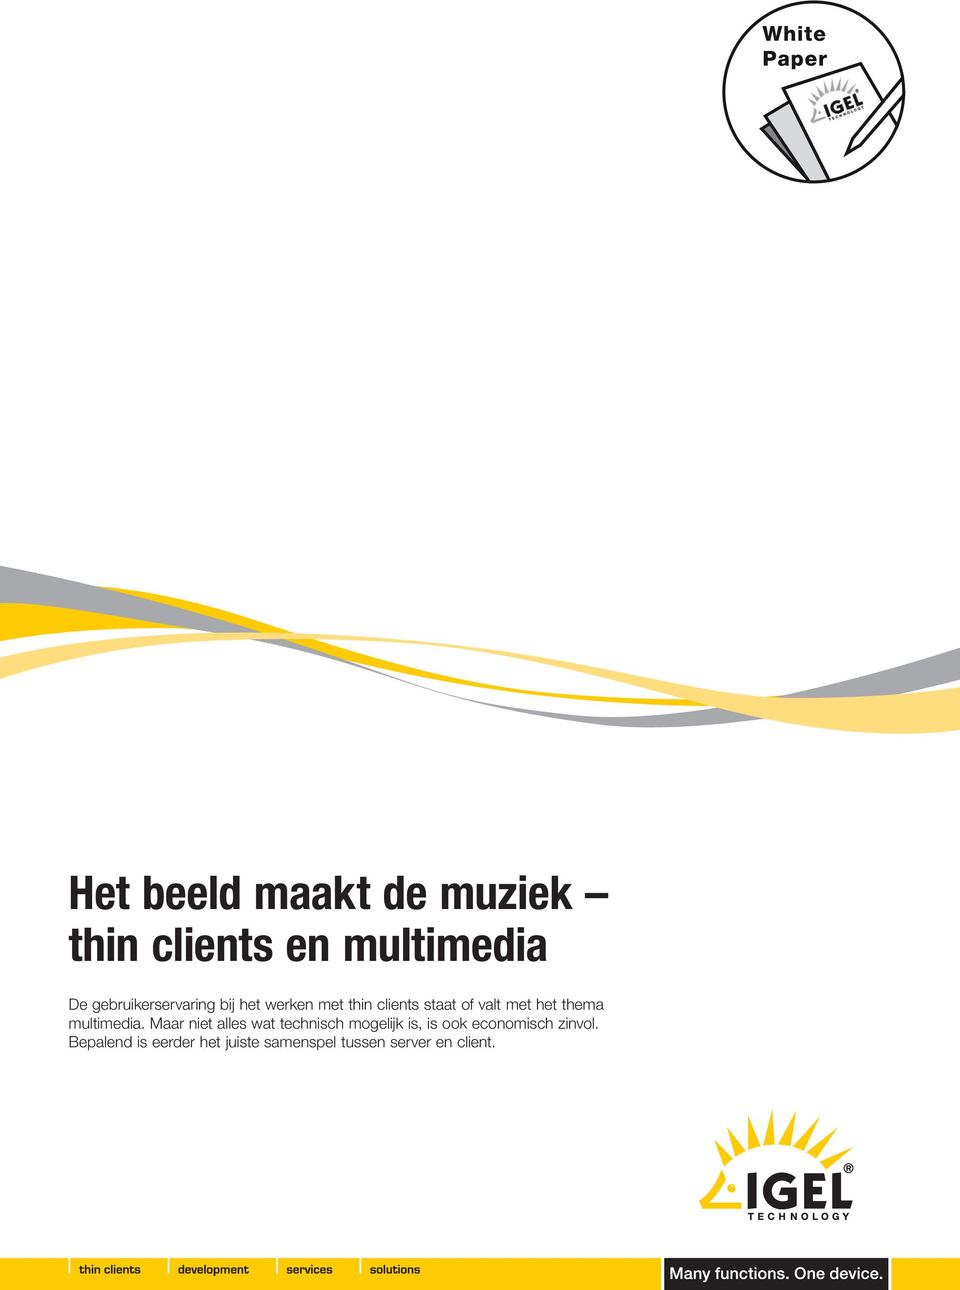 het thema multimedia.